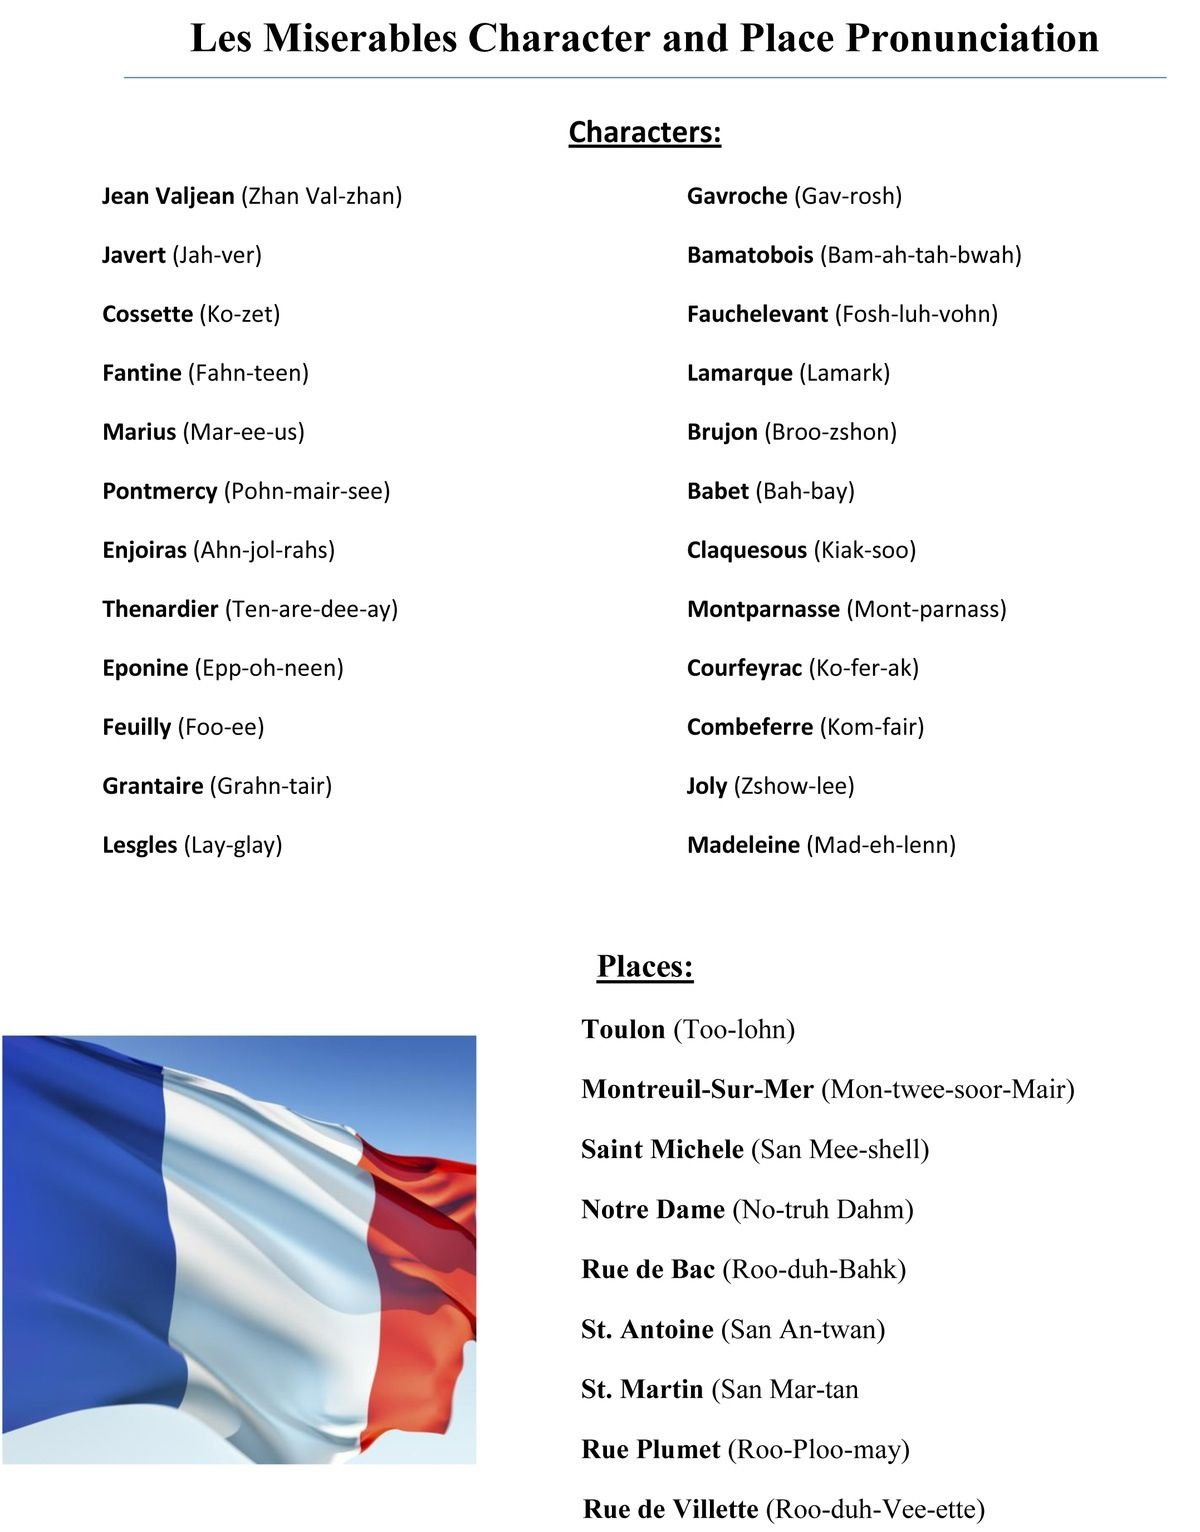 Pronunciation of Characters and Places in Les Miserables! This is